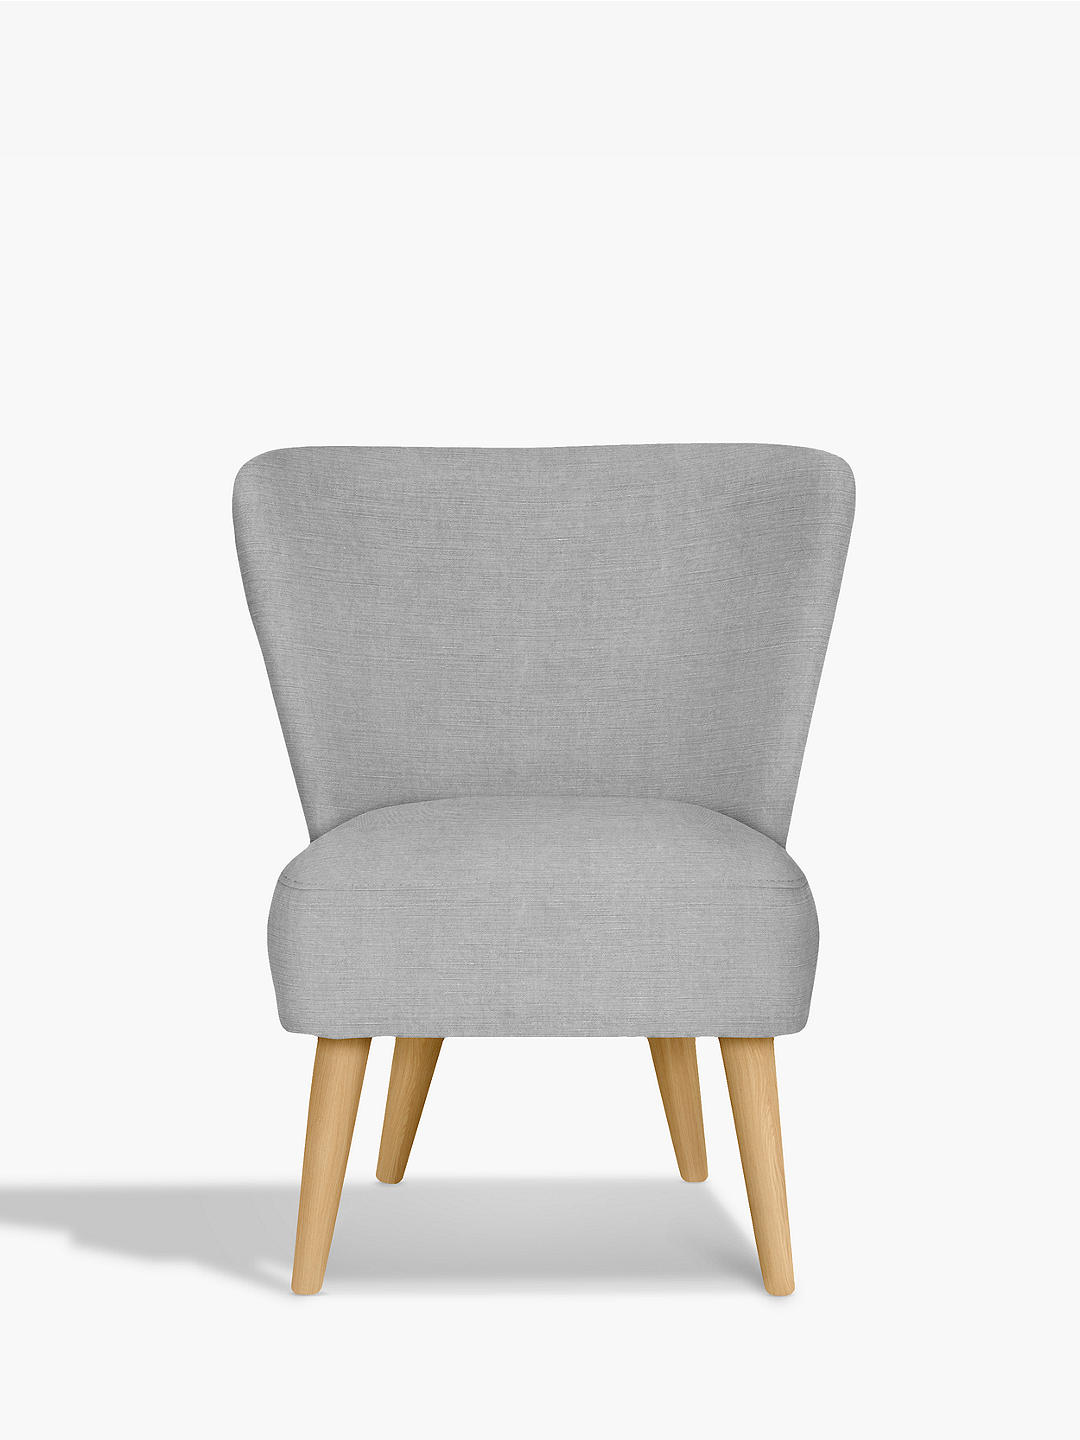 Buy House by John Lewis Audrey Accent Chair, Light Leg, Hatton Teal Online at johnlewis.com